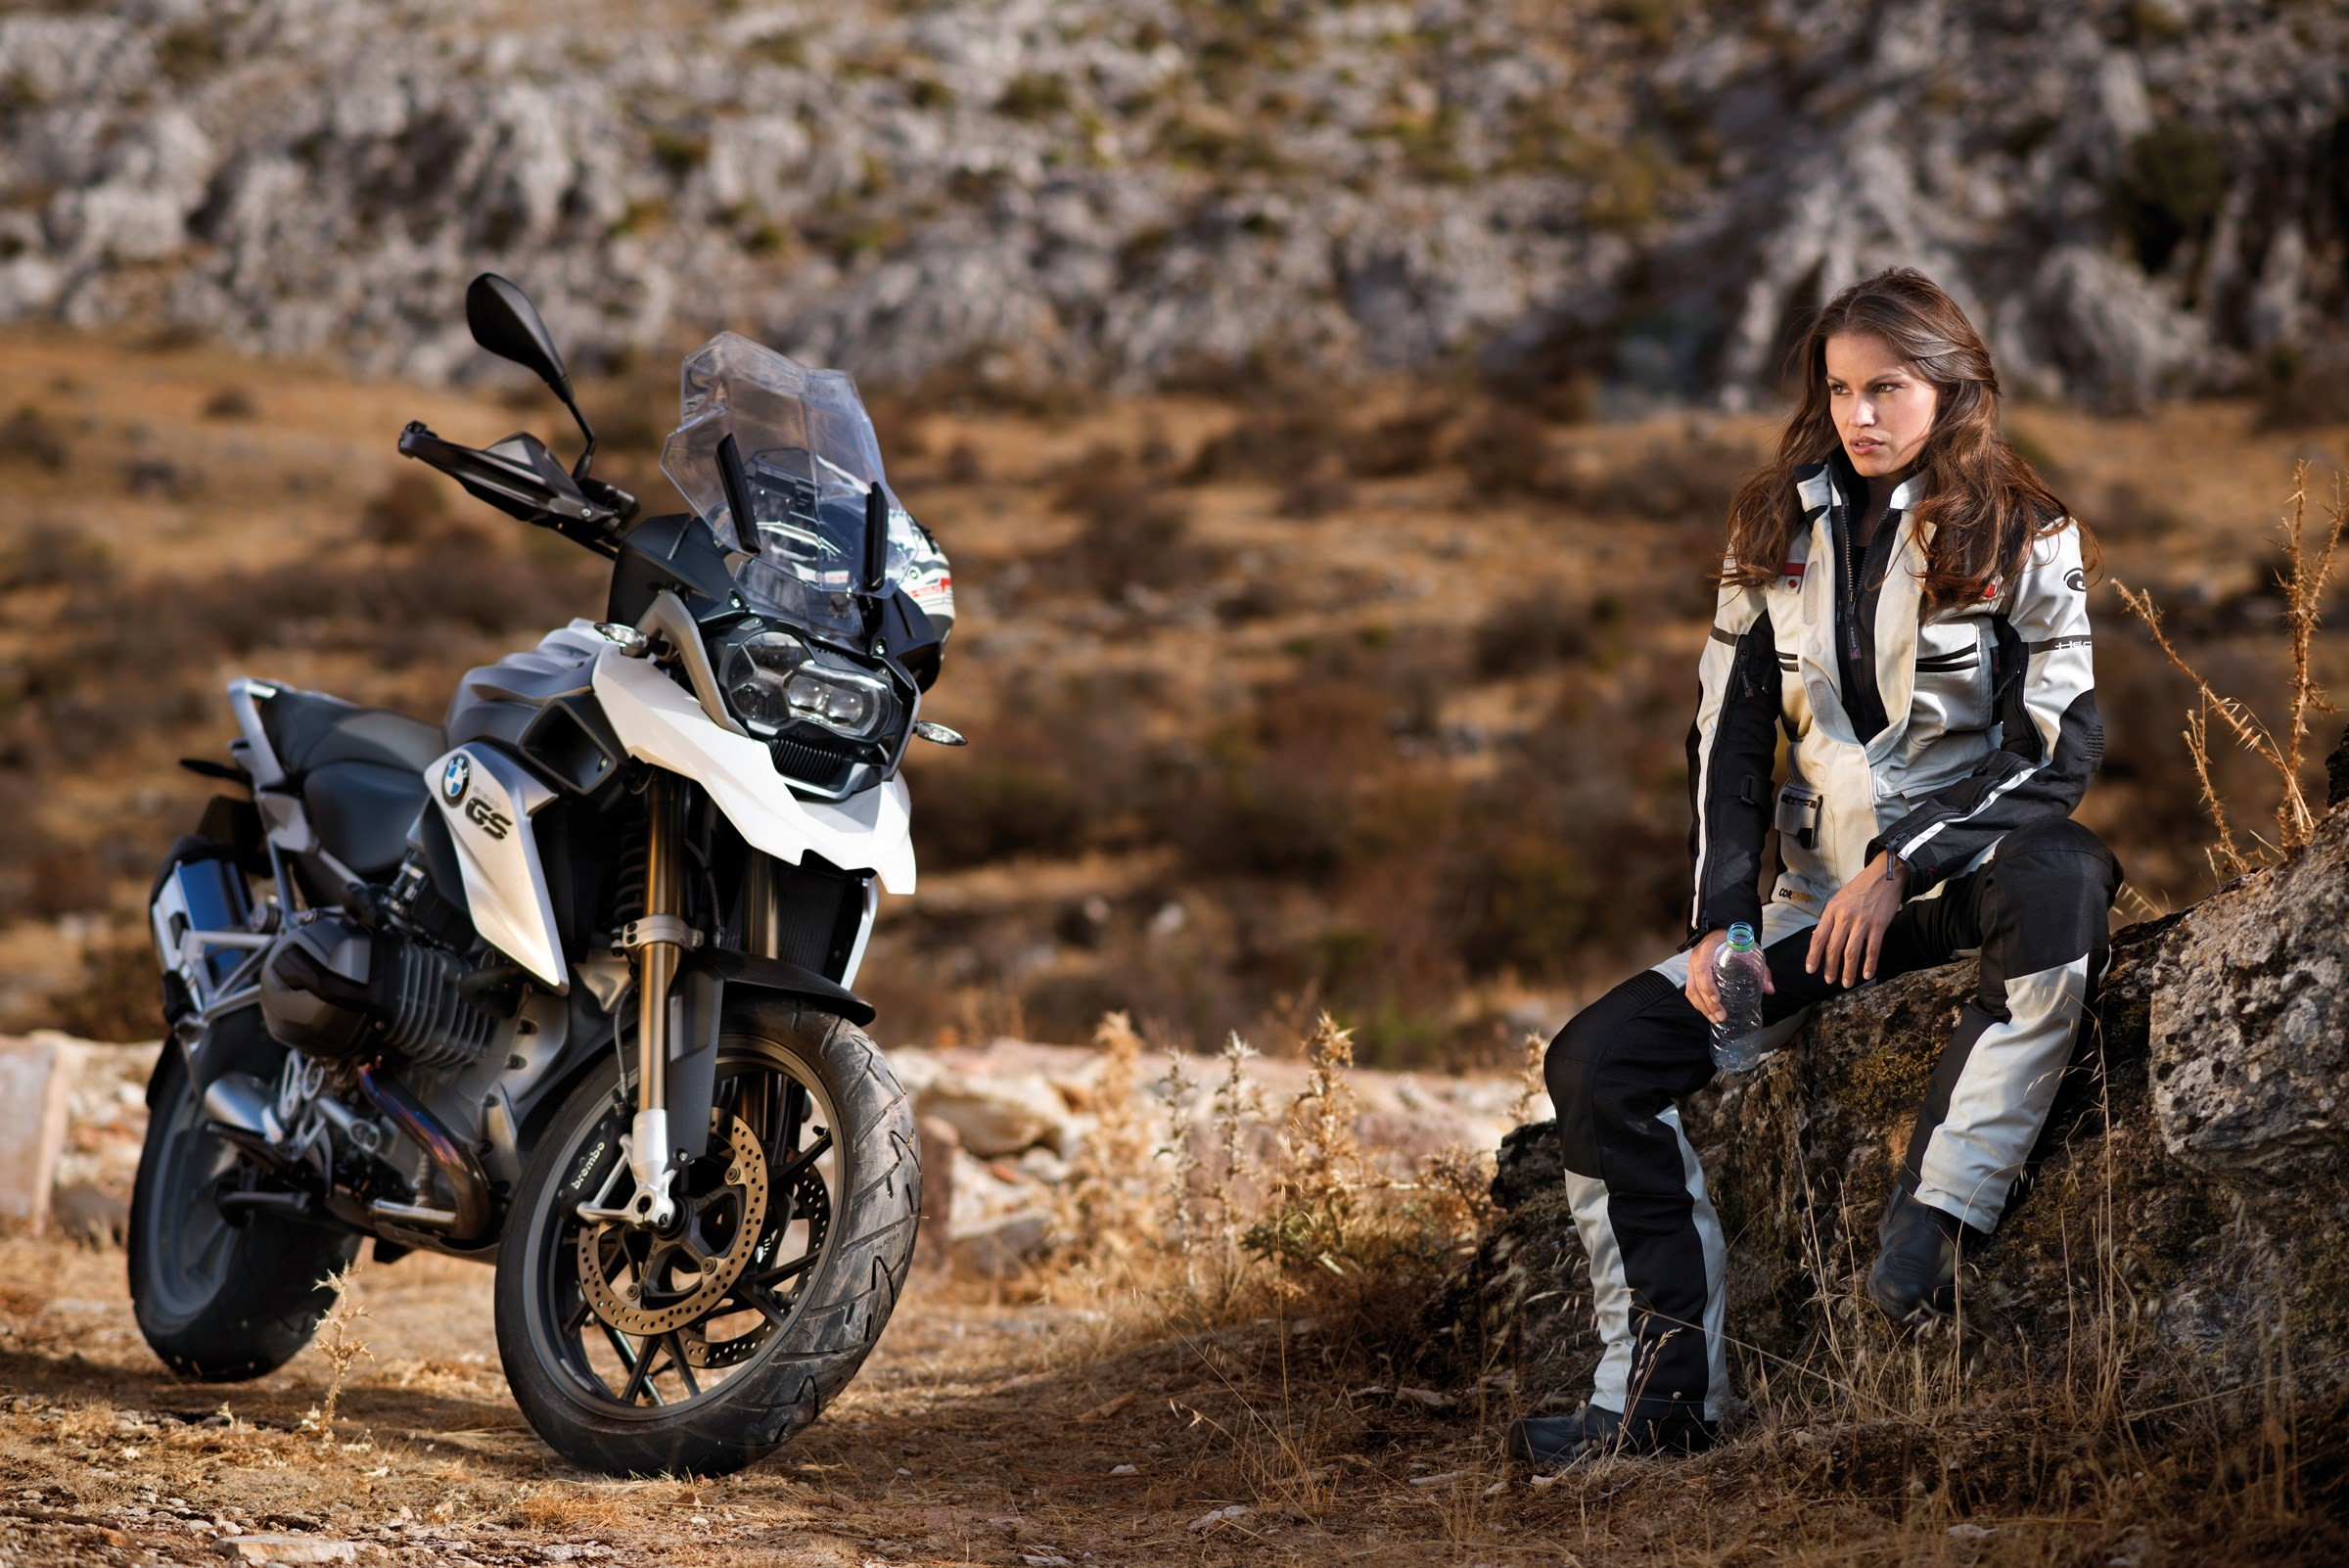 girls and motorcycles pic widescreen retina imac – girls and motorcycles  category